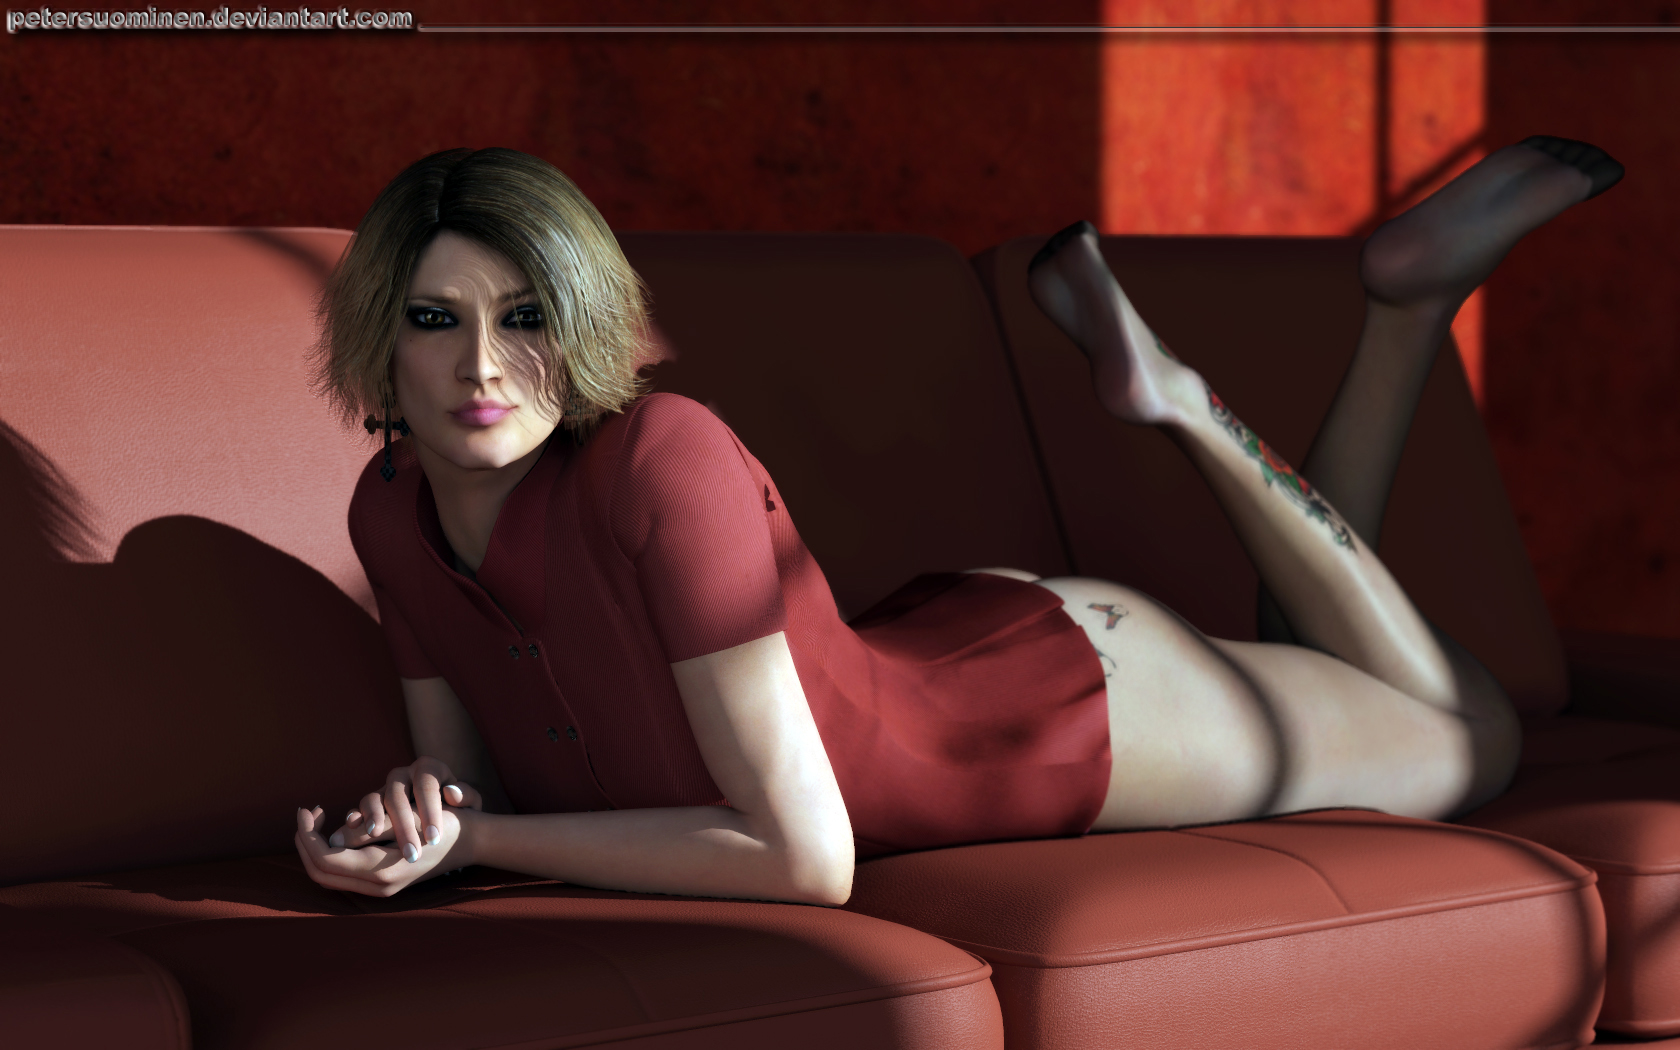 http://fc02.deviantart.net/fs71/f/2012/021/2/6/cheeky_couch_by_petersuominen-d4n4fly.jpg